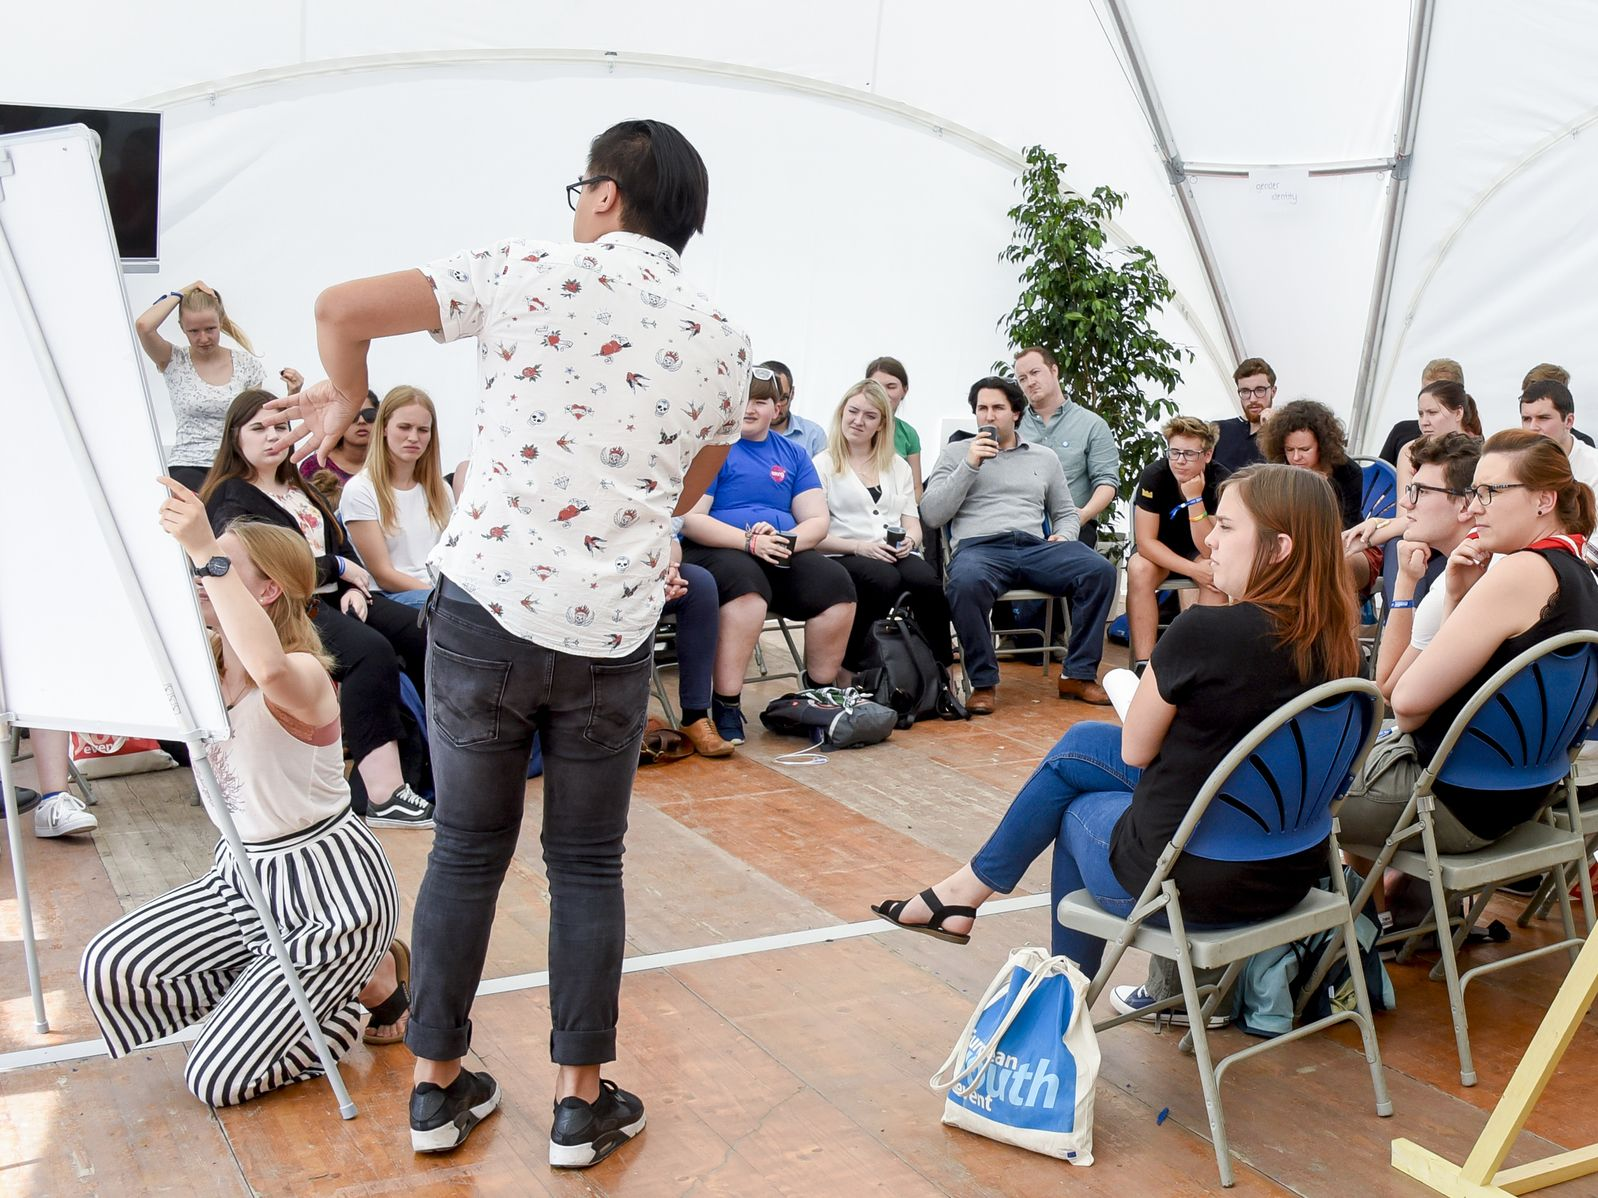 Workshop during the European Youth Event 2018, photo: European Union 2018 / Genevieve Engel